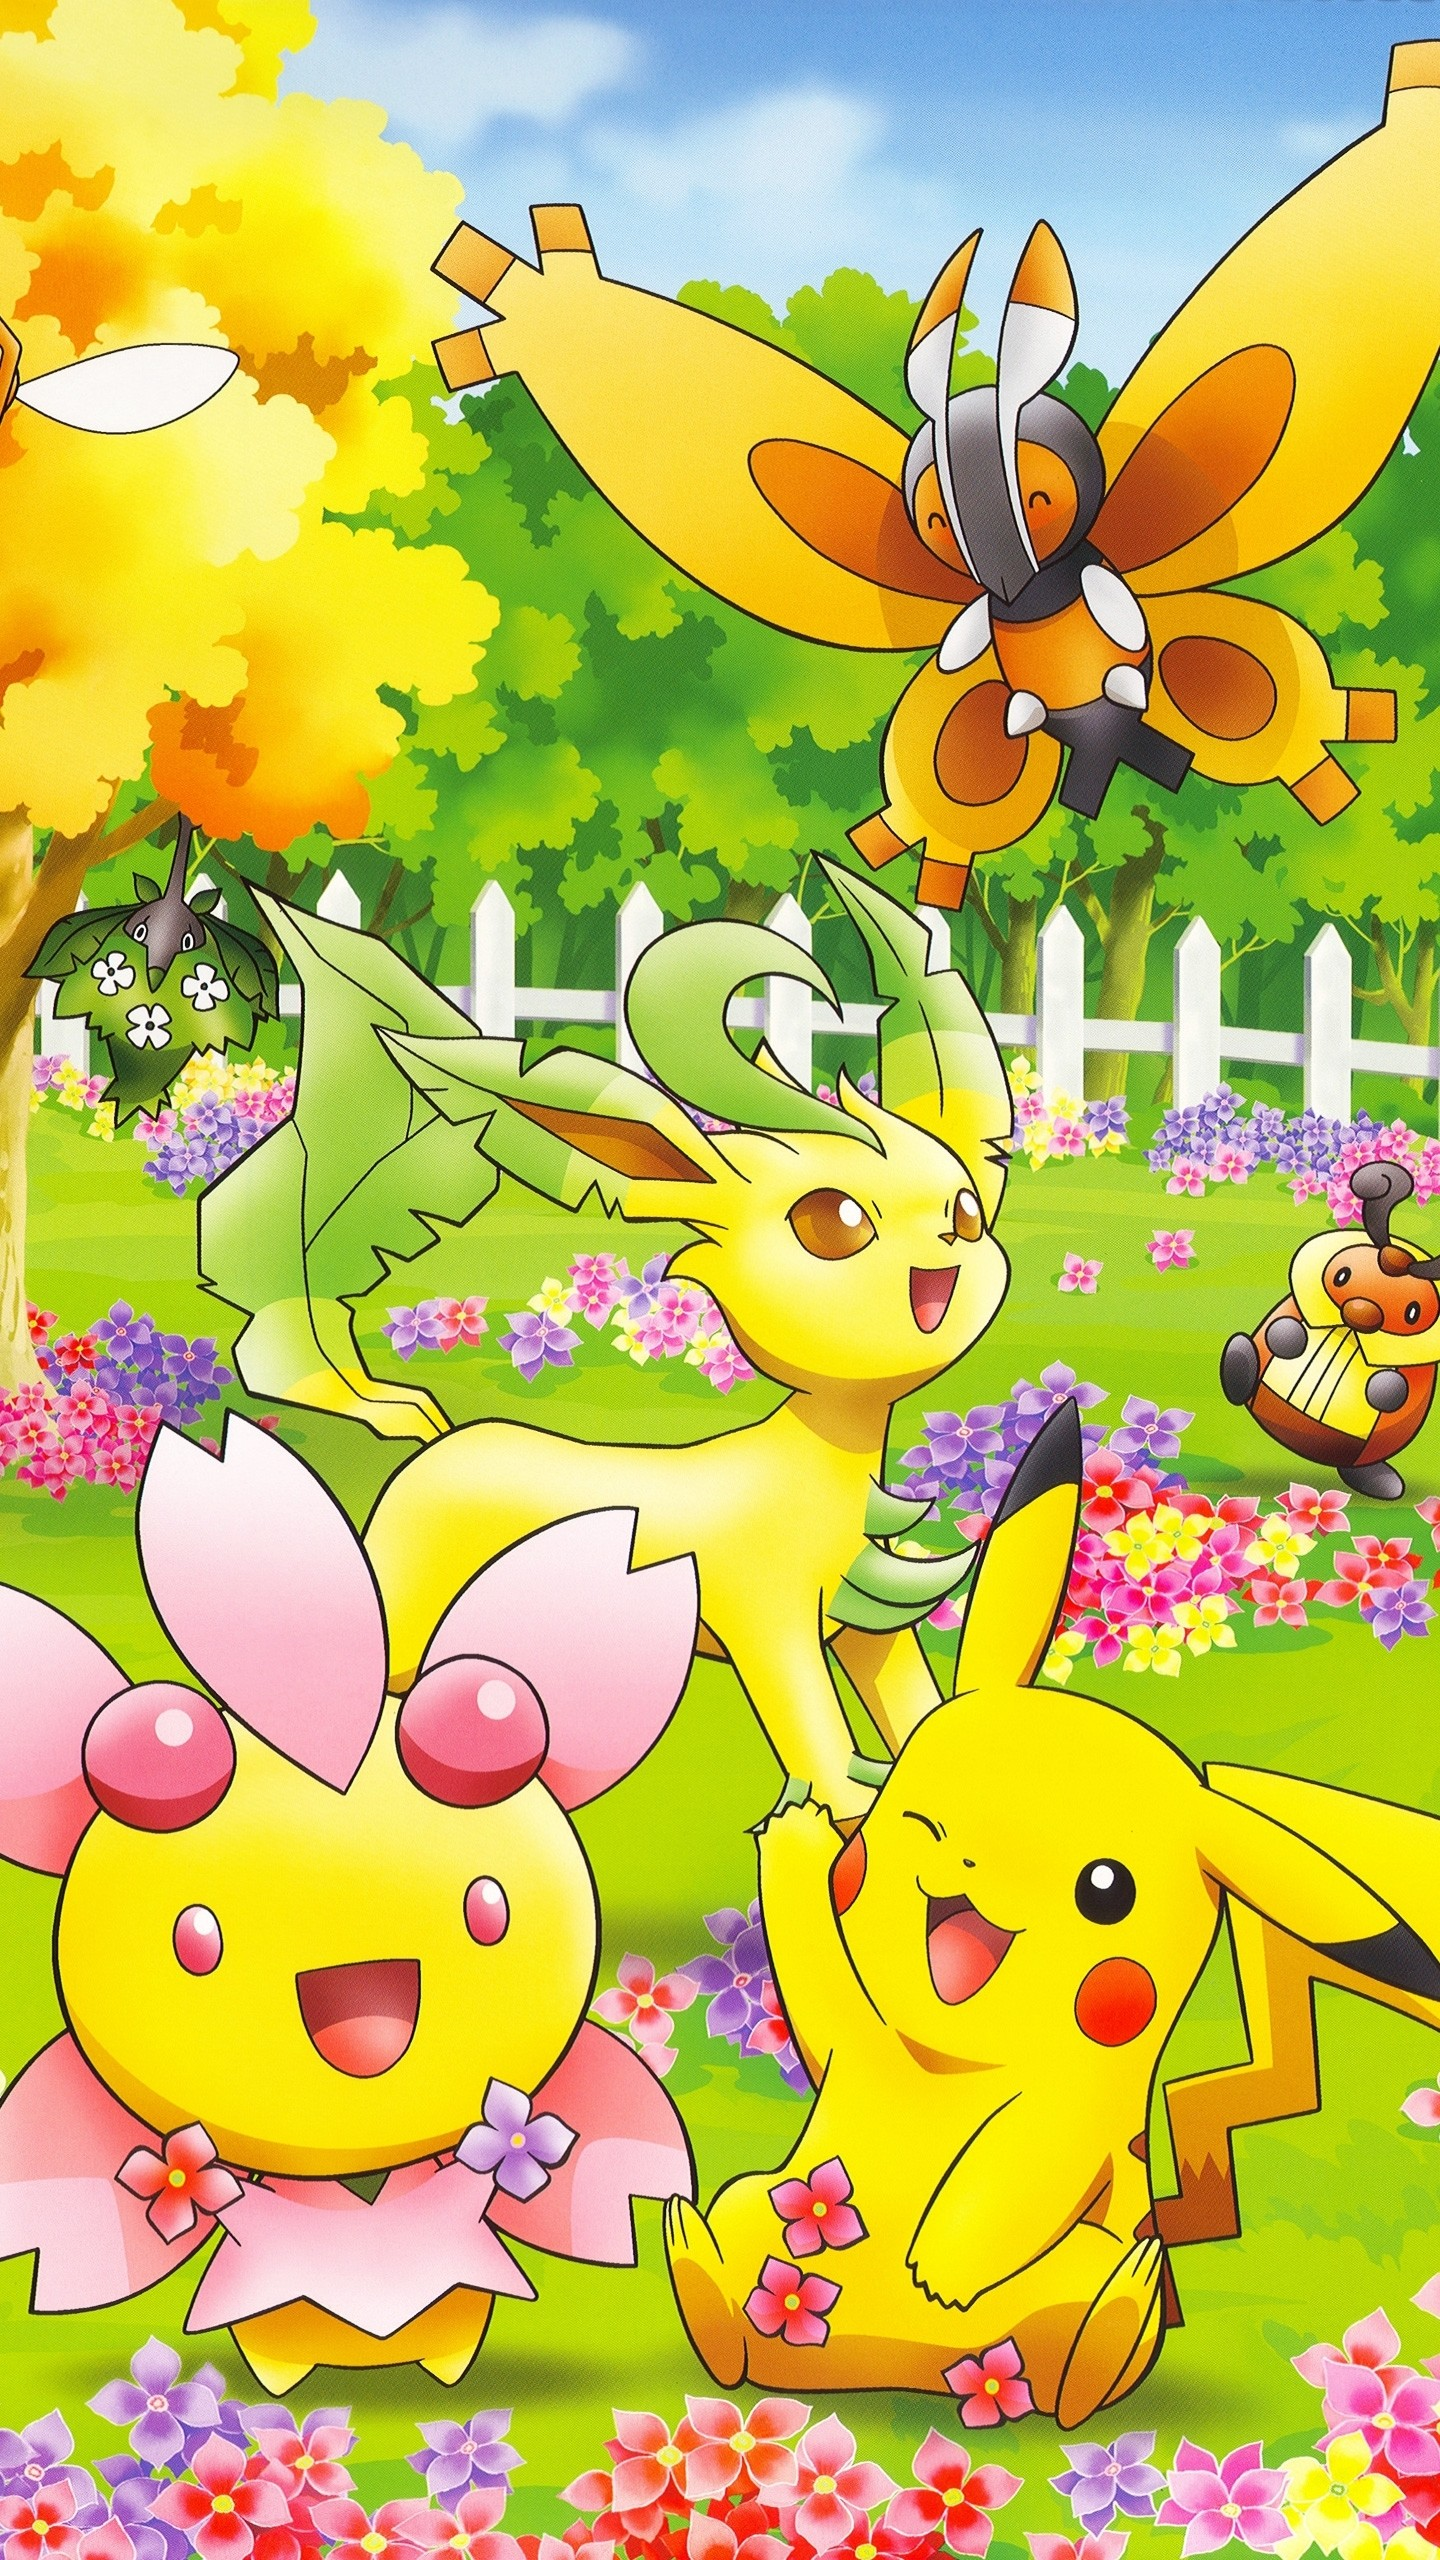 … Cute Pokemon characters Game mobile wallpaper